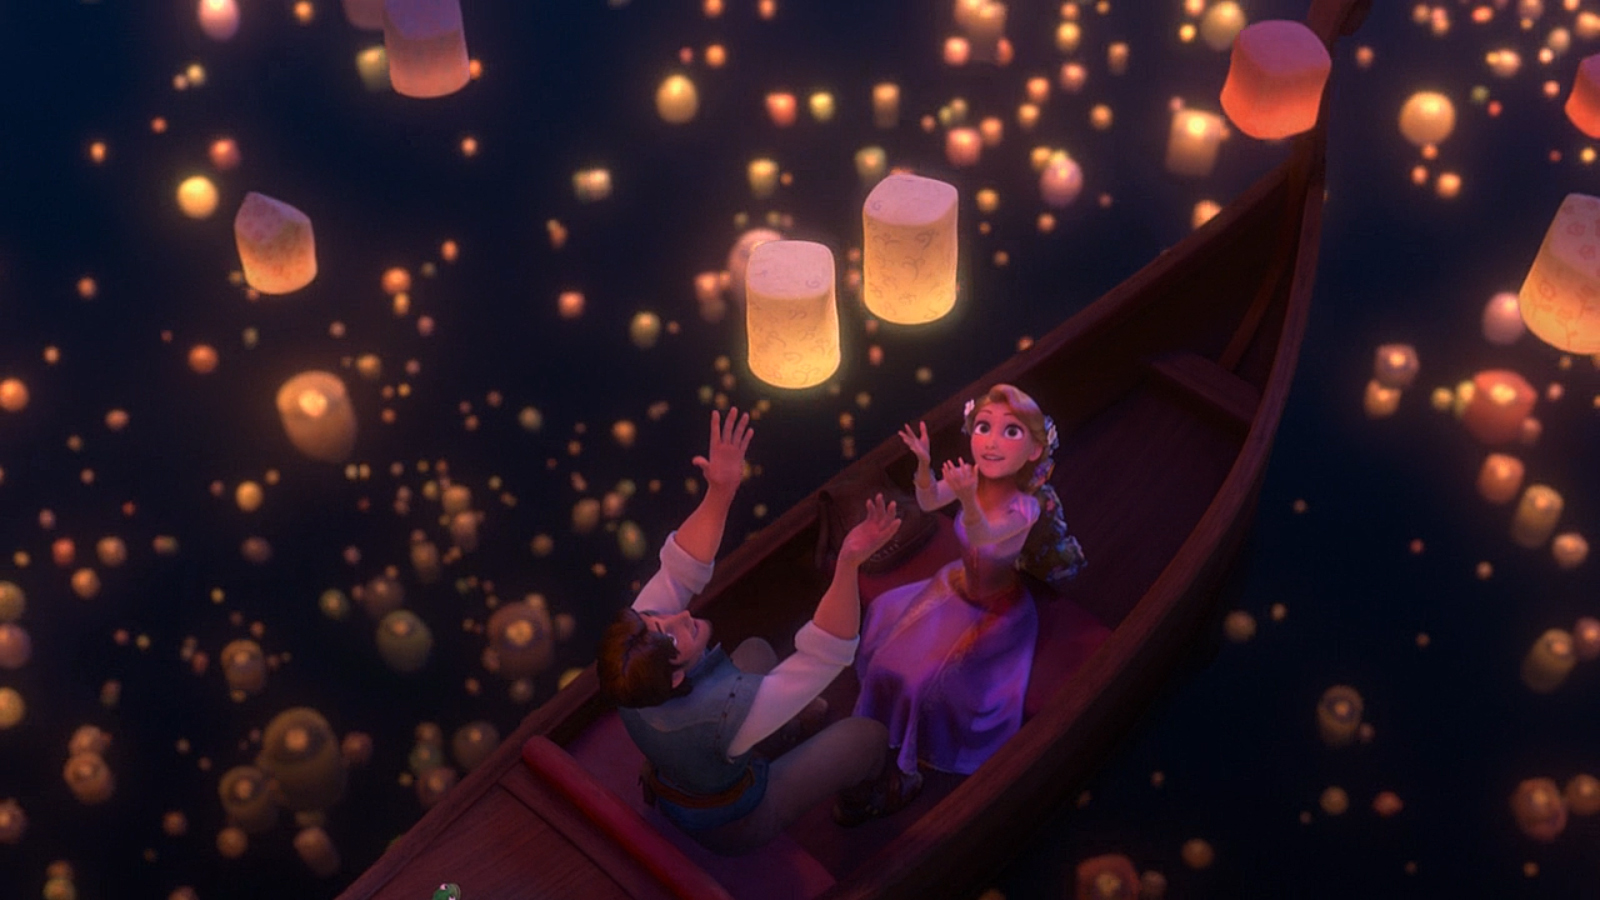 tangled HD Wallpaper 1600x900